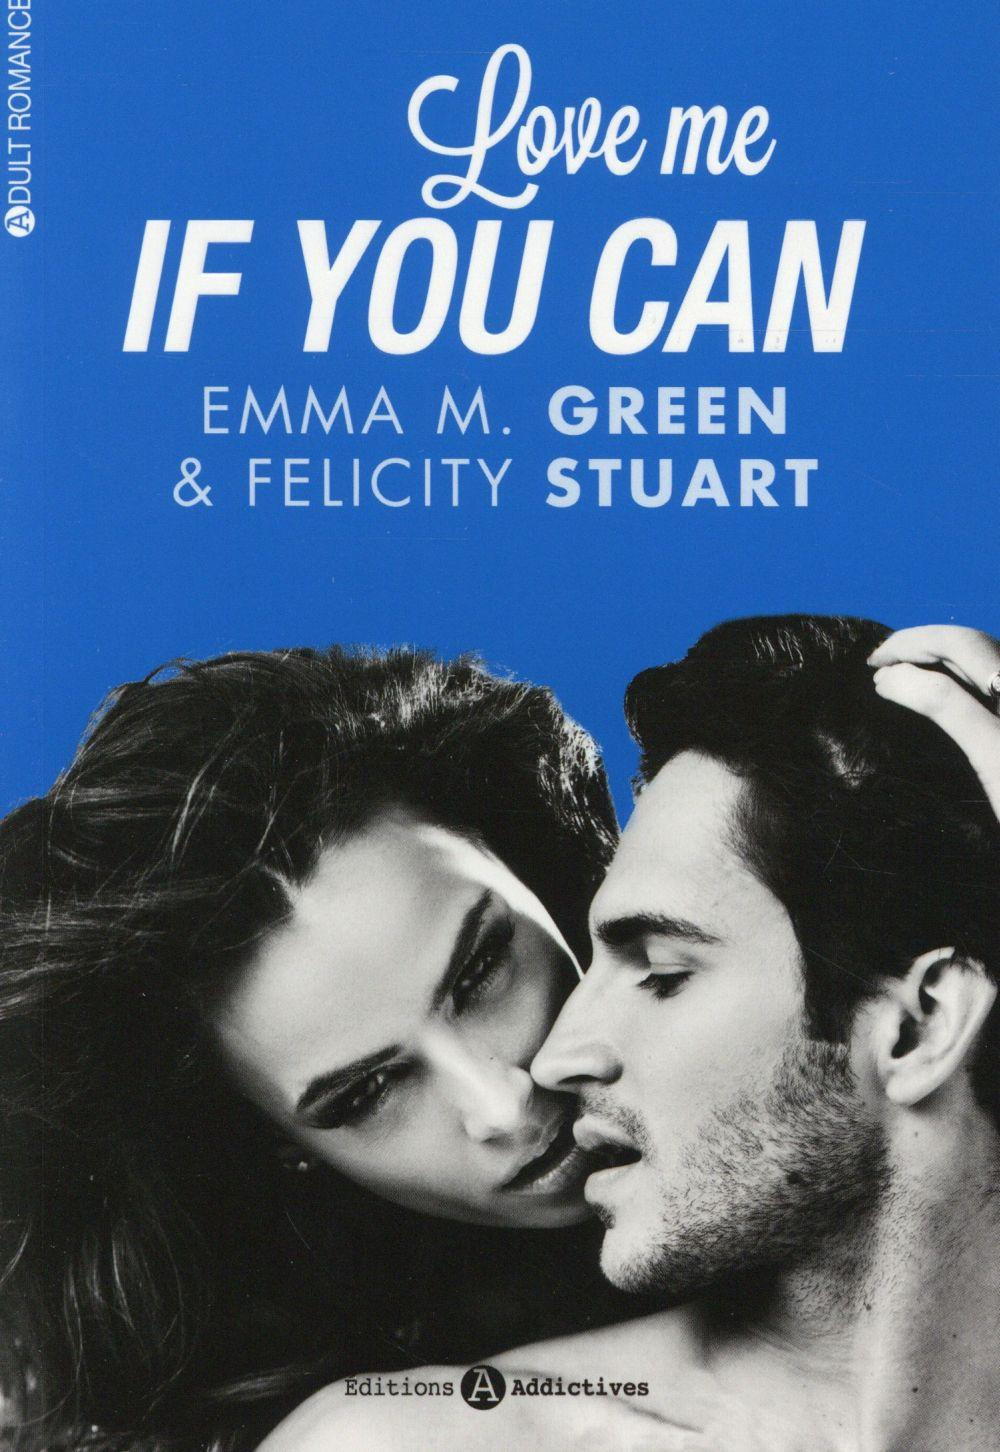 Love me if you can  - Felicity Stuart